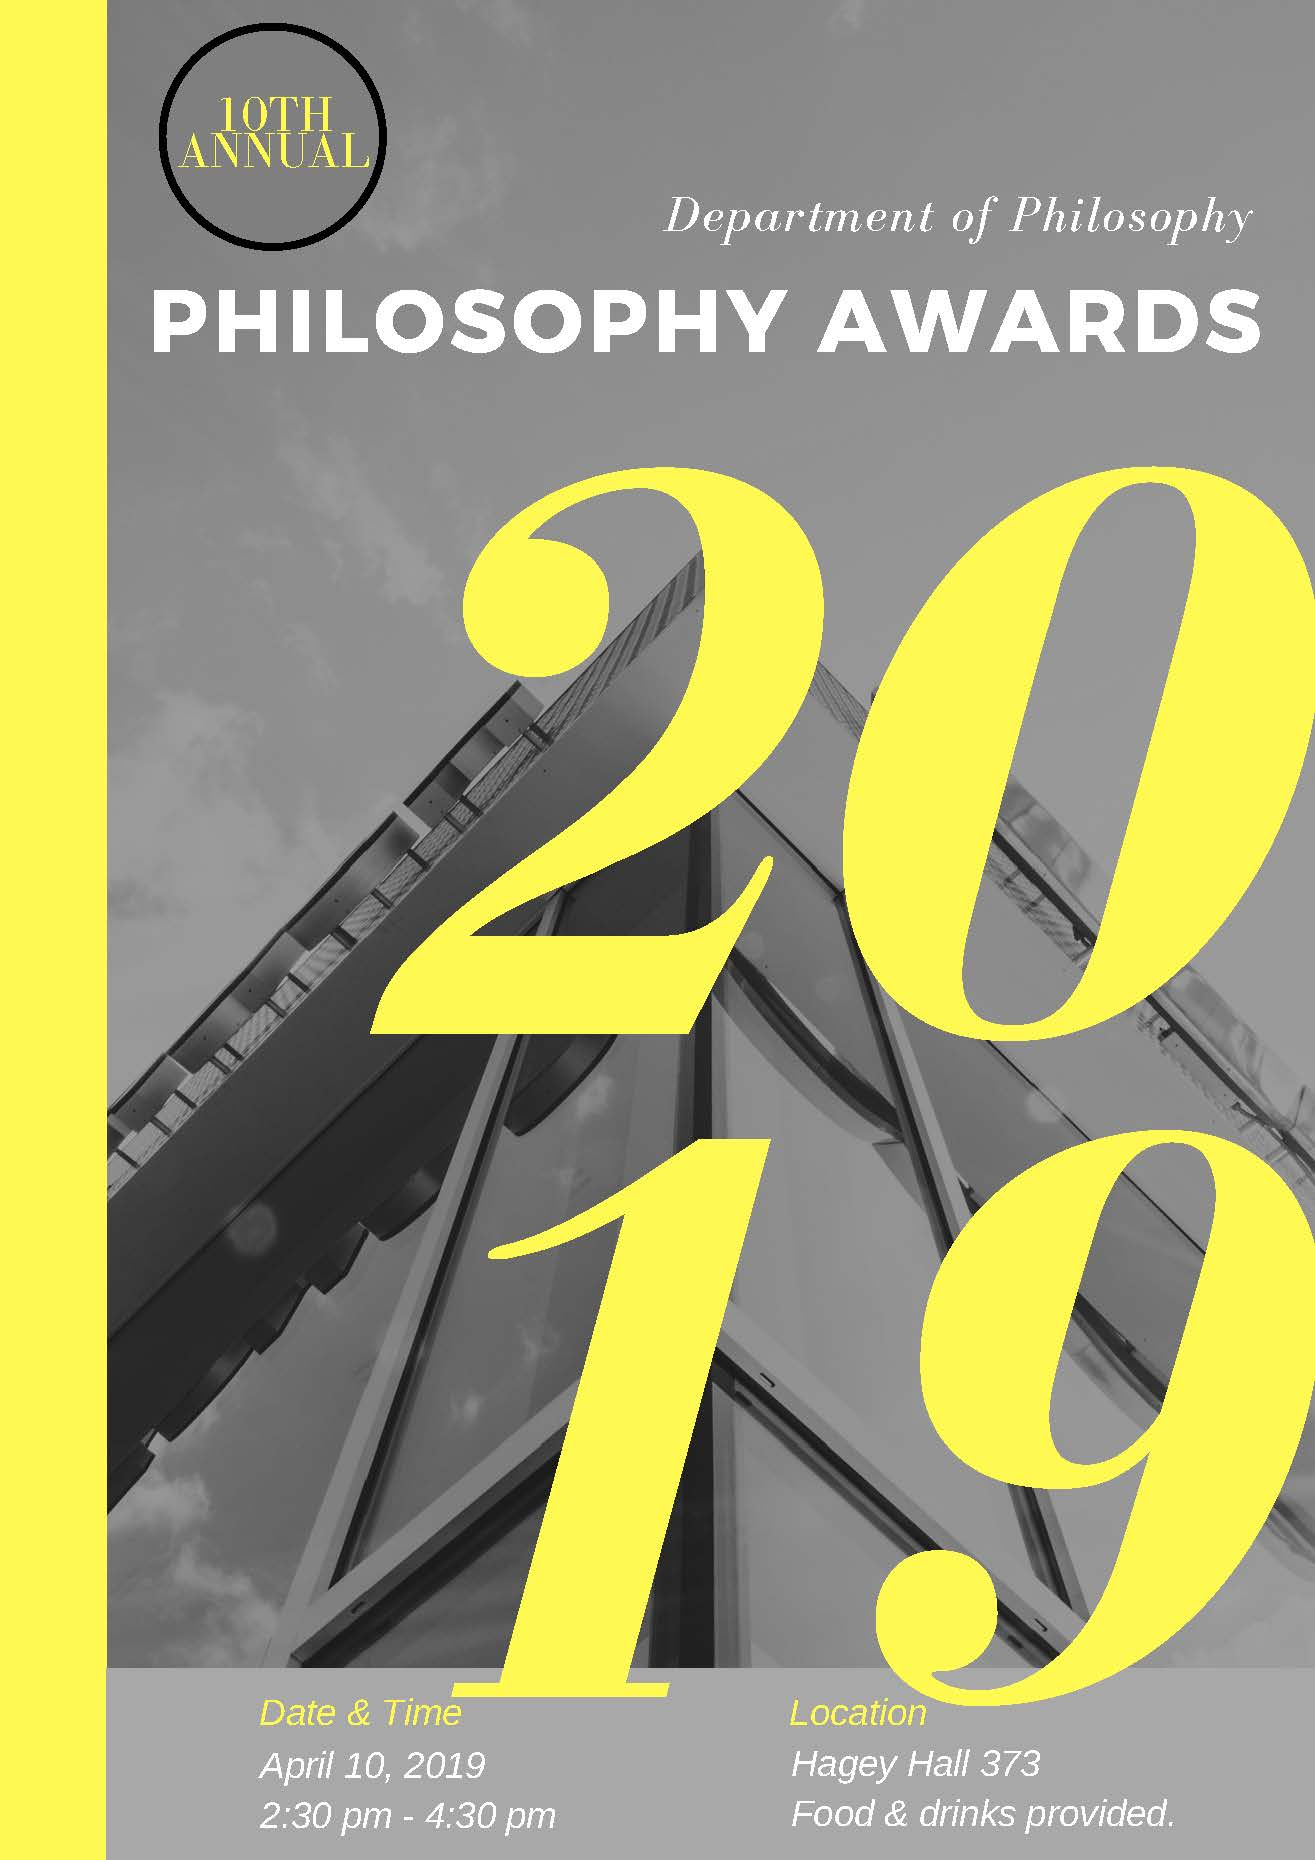 Poster for the 2019 philosophy awards